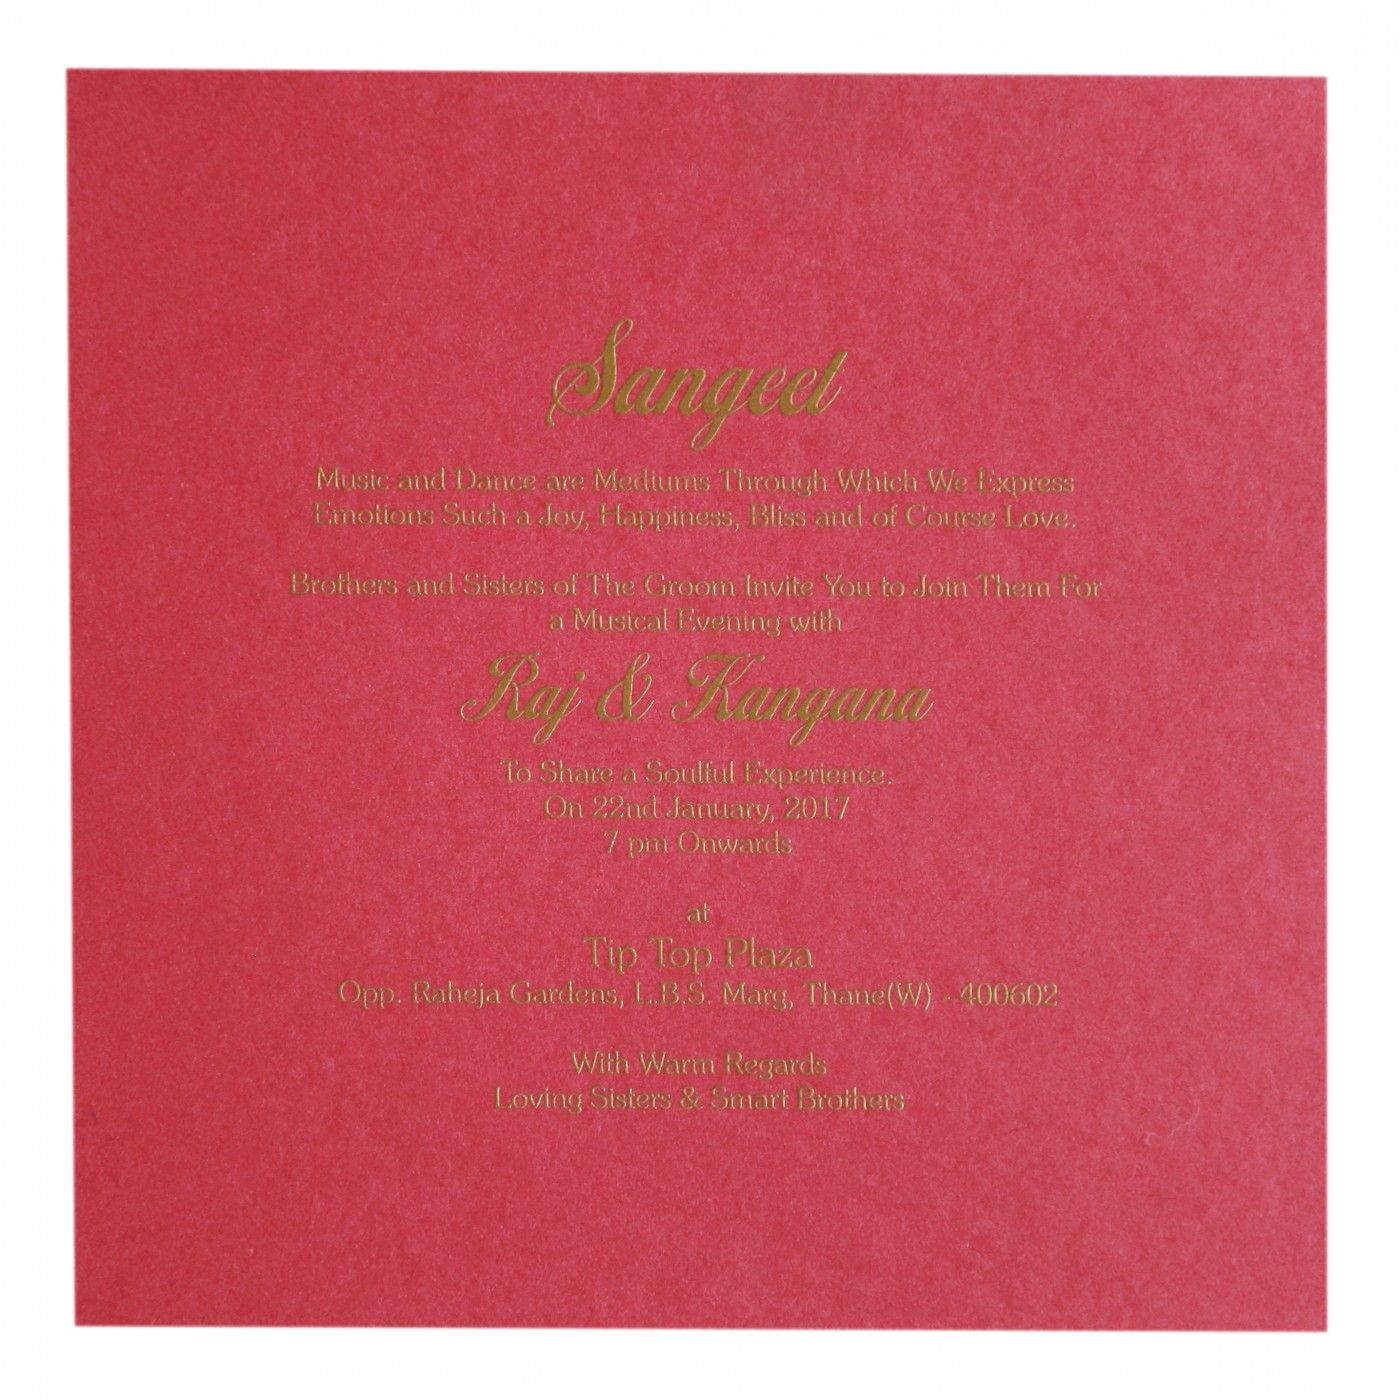 DEEP BLUE SHIMMERY EMBOSSED WEDDING INVITATION : CW-8260A - IndianWeddingCards